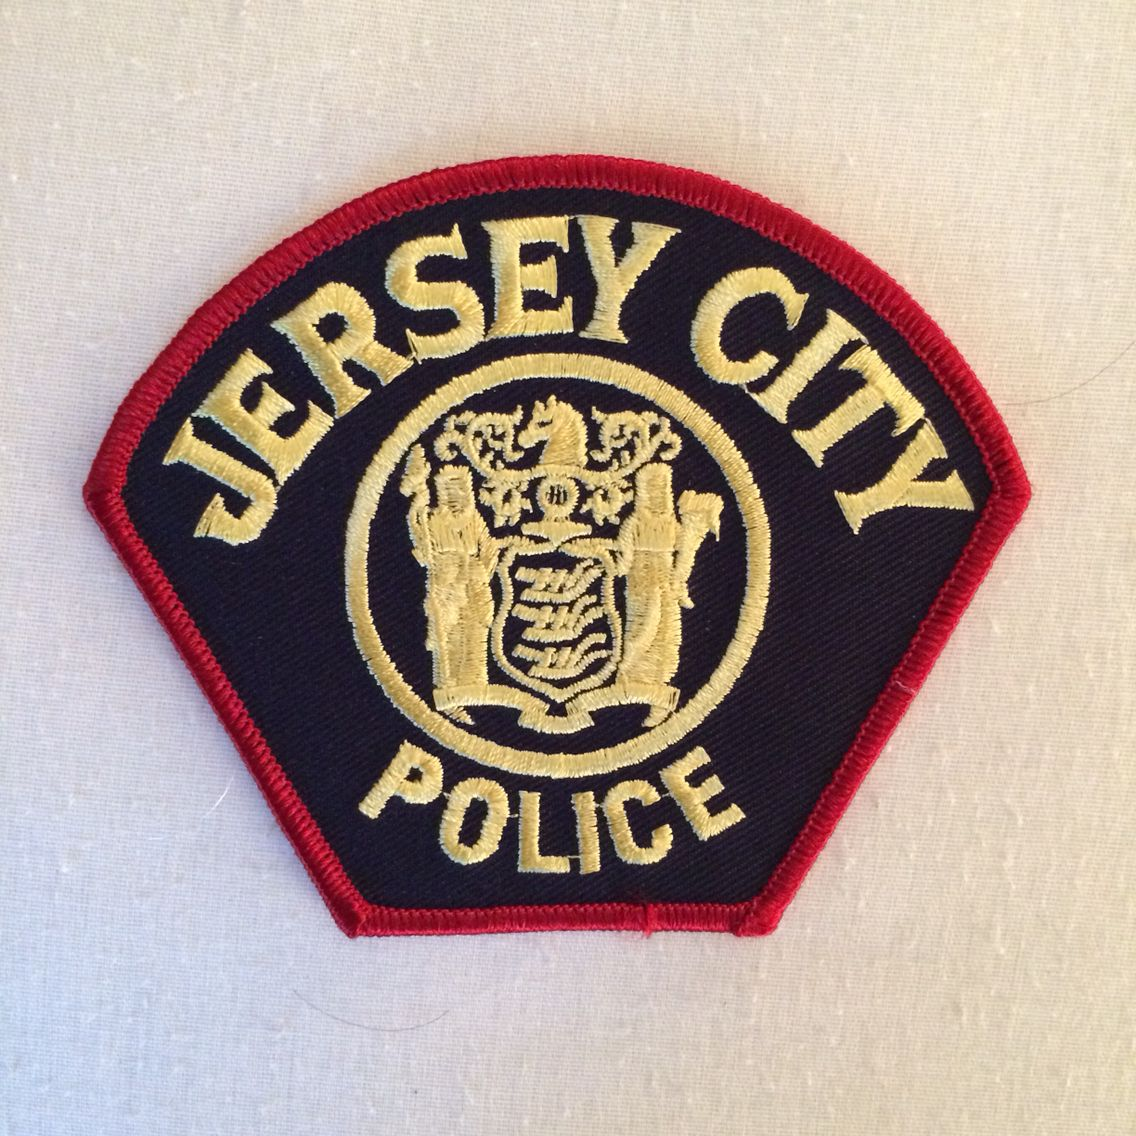 Jersey City Police Police Patches Police Badge Police